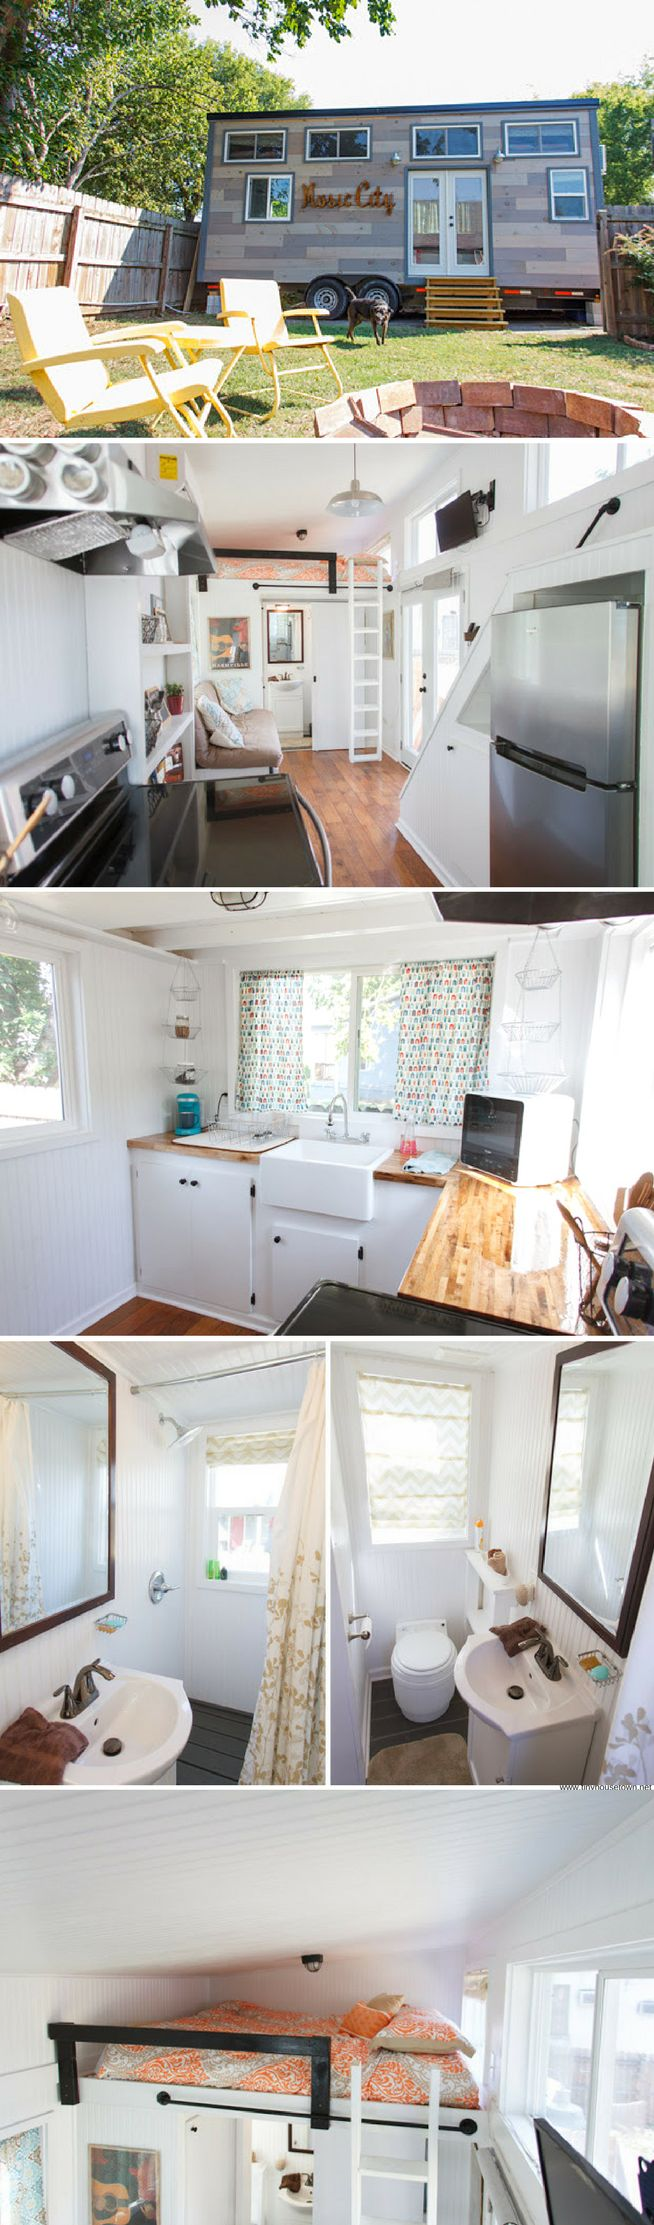 1745 best Tiny House Charm images on Pinterest | Small houses ...